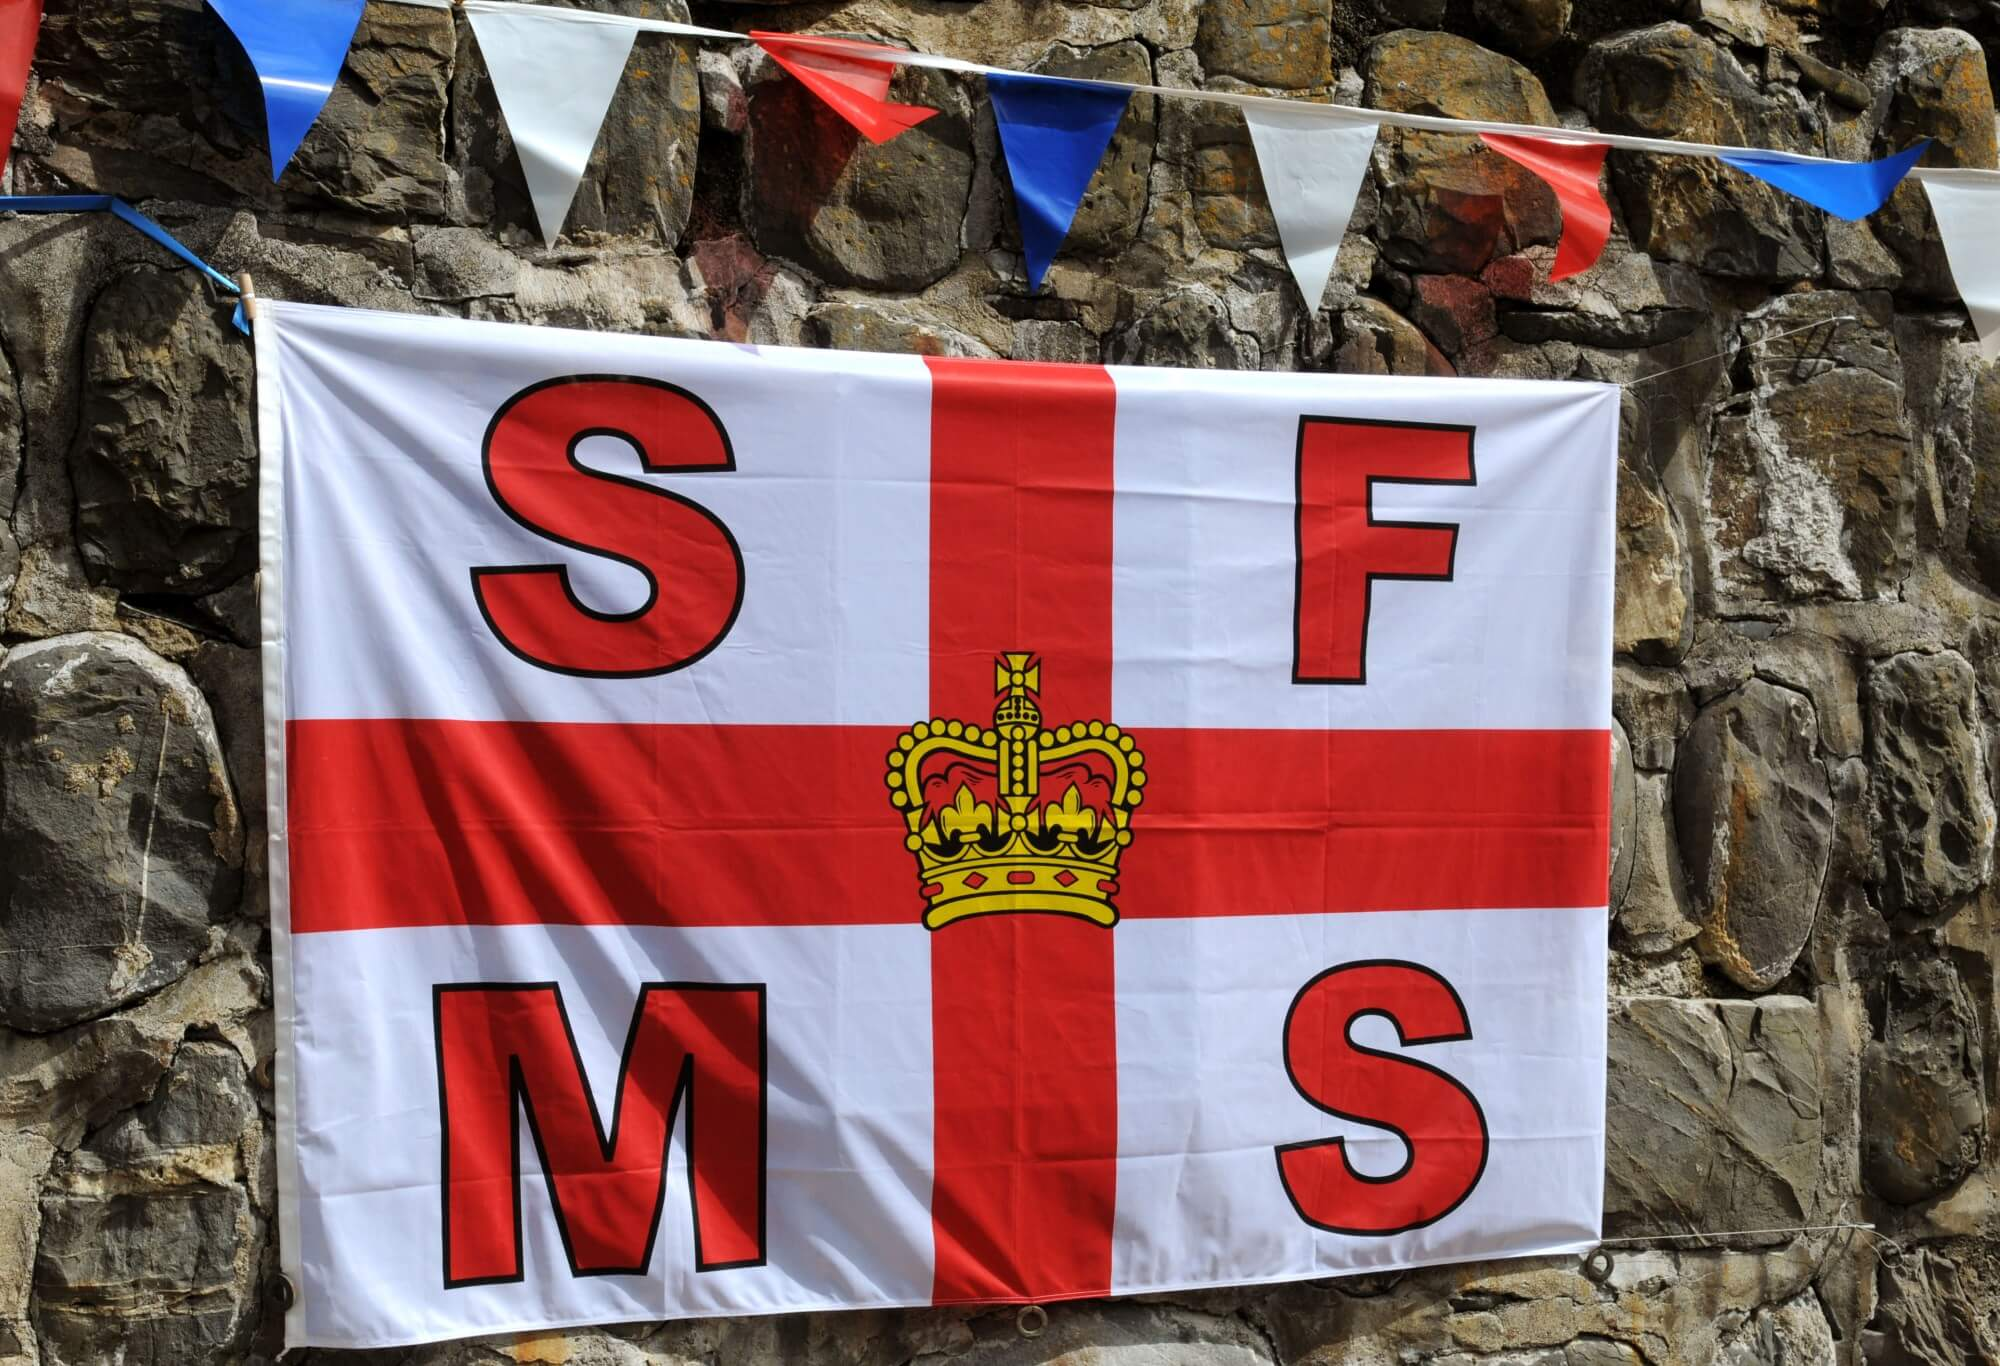 Shipwrecked Mariners Society Charity Events Flag